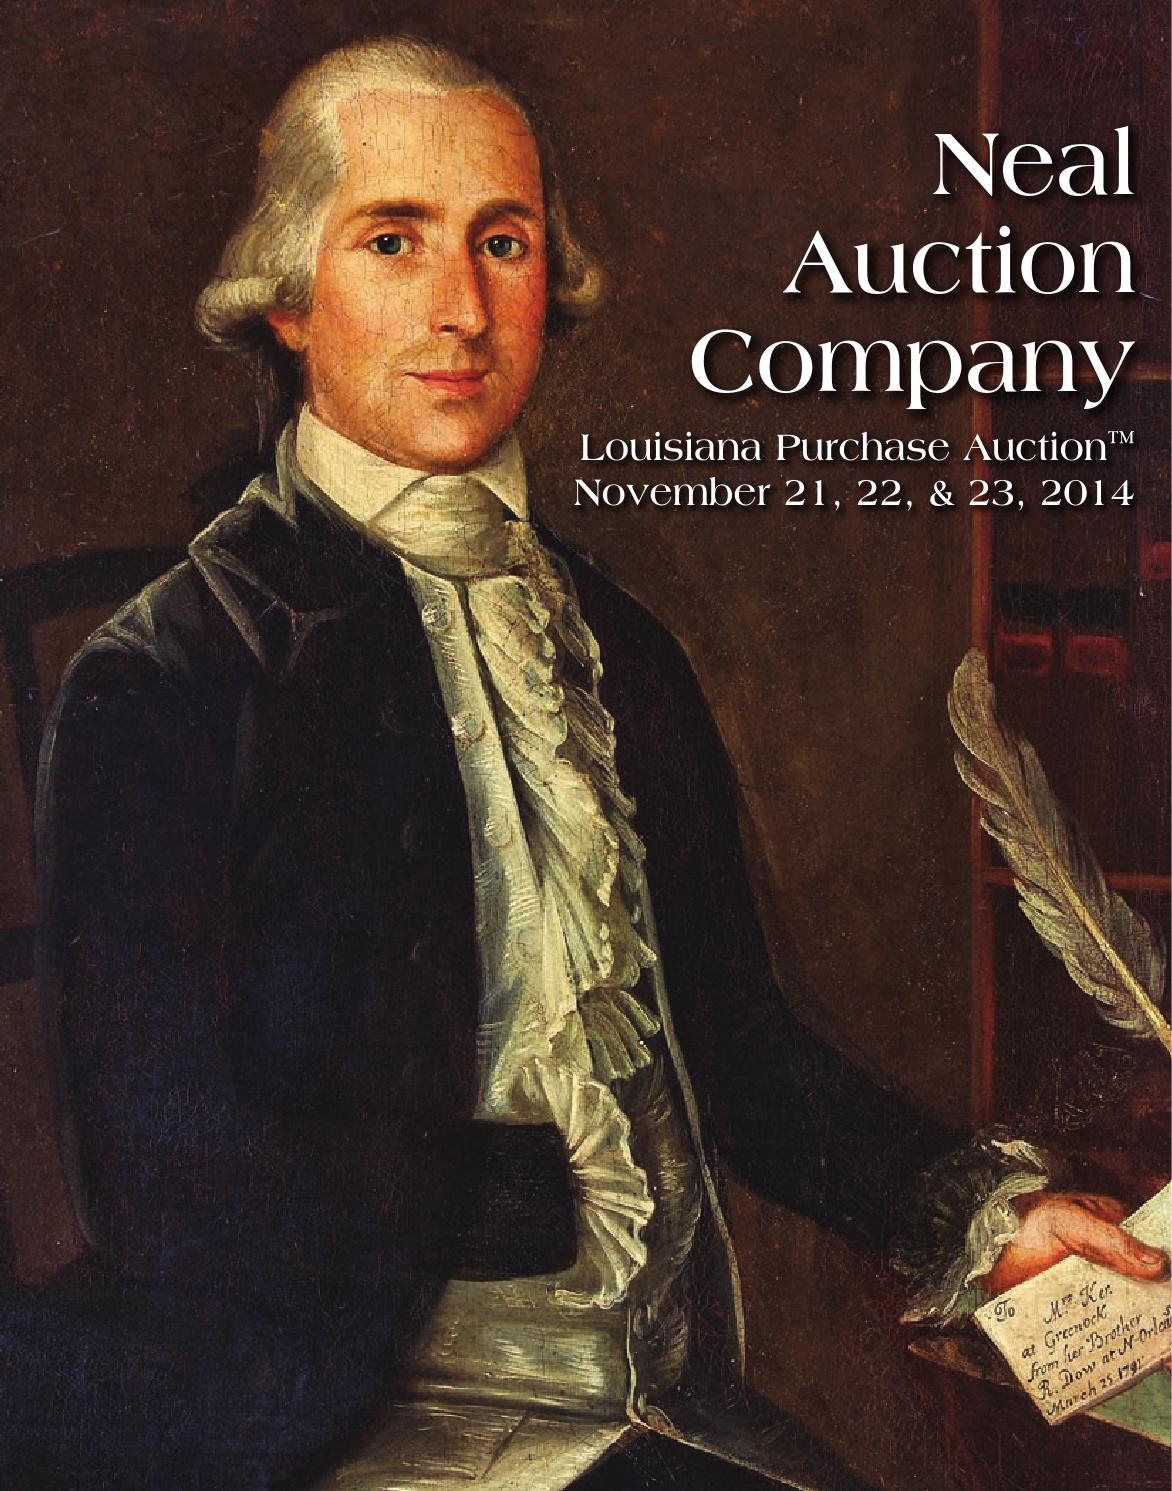 Verand Art Chartres Liquidation november 21-23 louisiana purchase auction catalogueneal